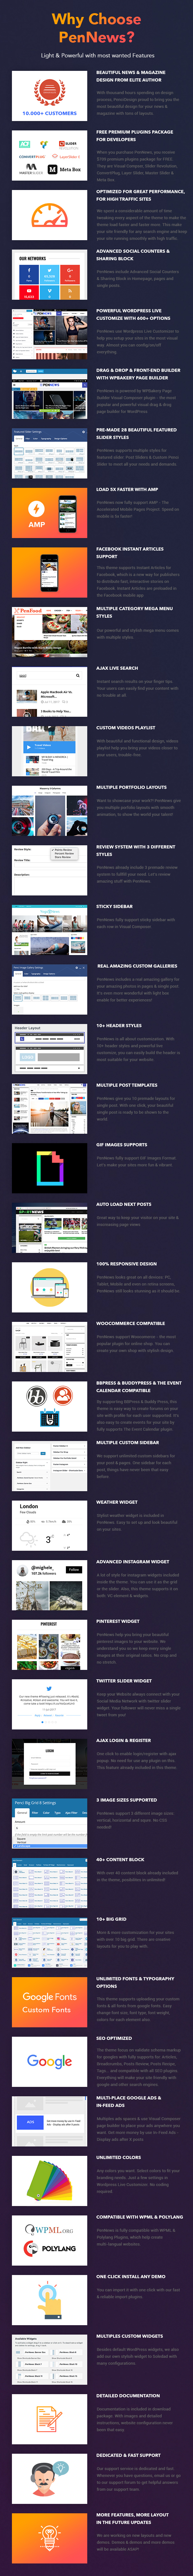 PenNews - News/ Magazine/ Business/ Portfolio/Reviews Landing AMP WordPress Theme - 42